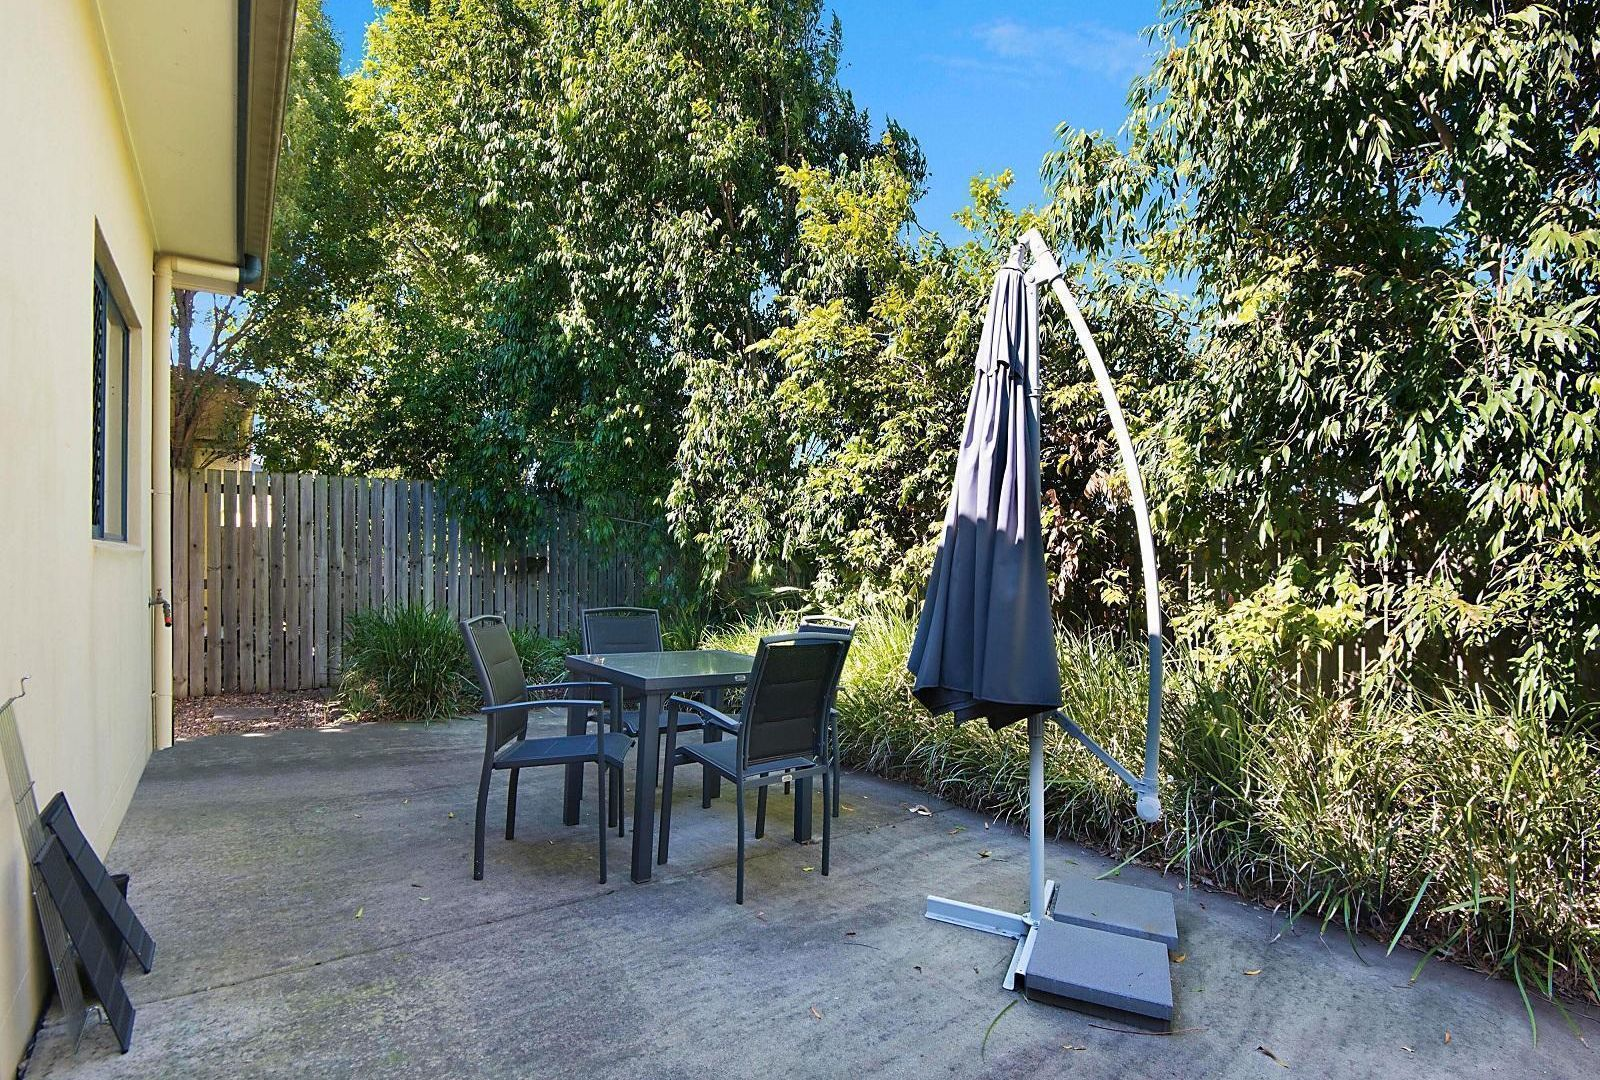 3/346 Zillmere Road, Zillmere QLD 4034, Image 7